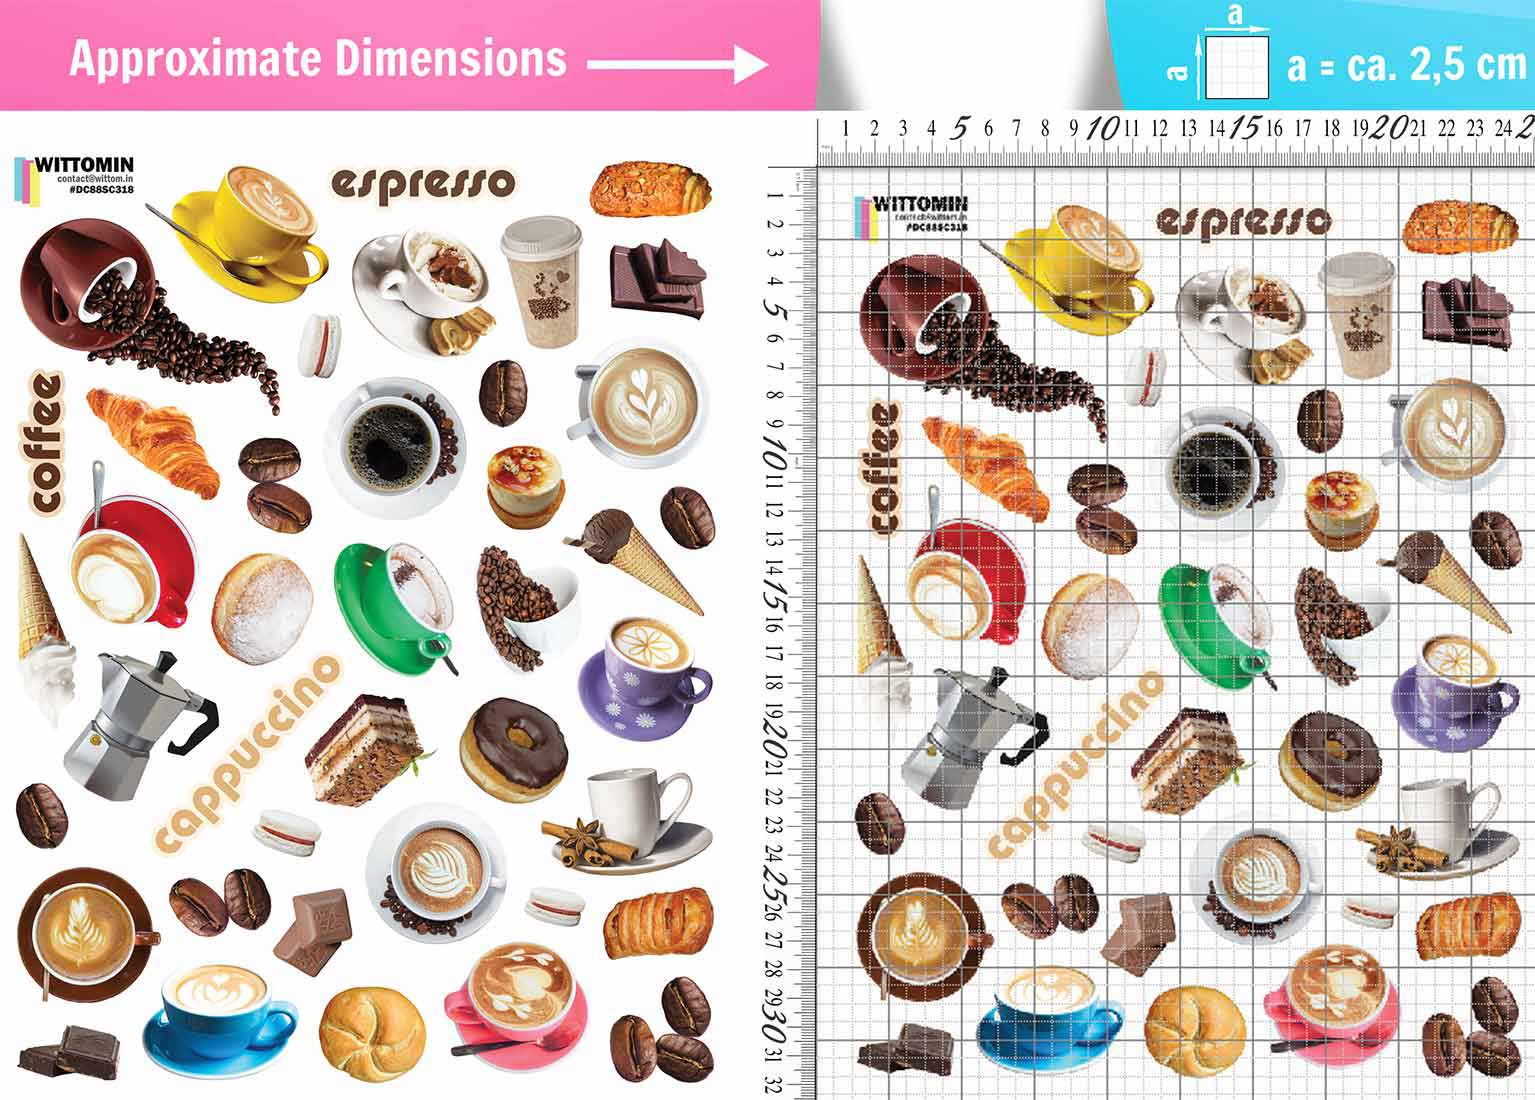 Small coffee and pastries sticker set from Wittomin